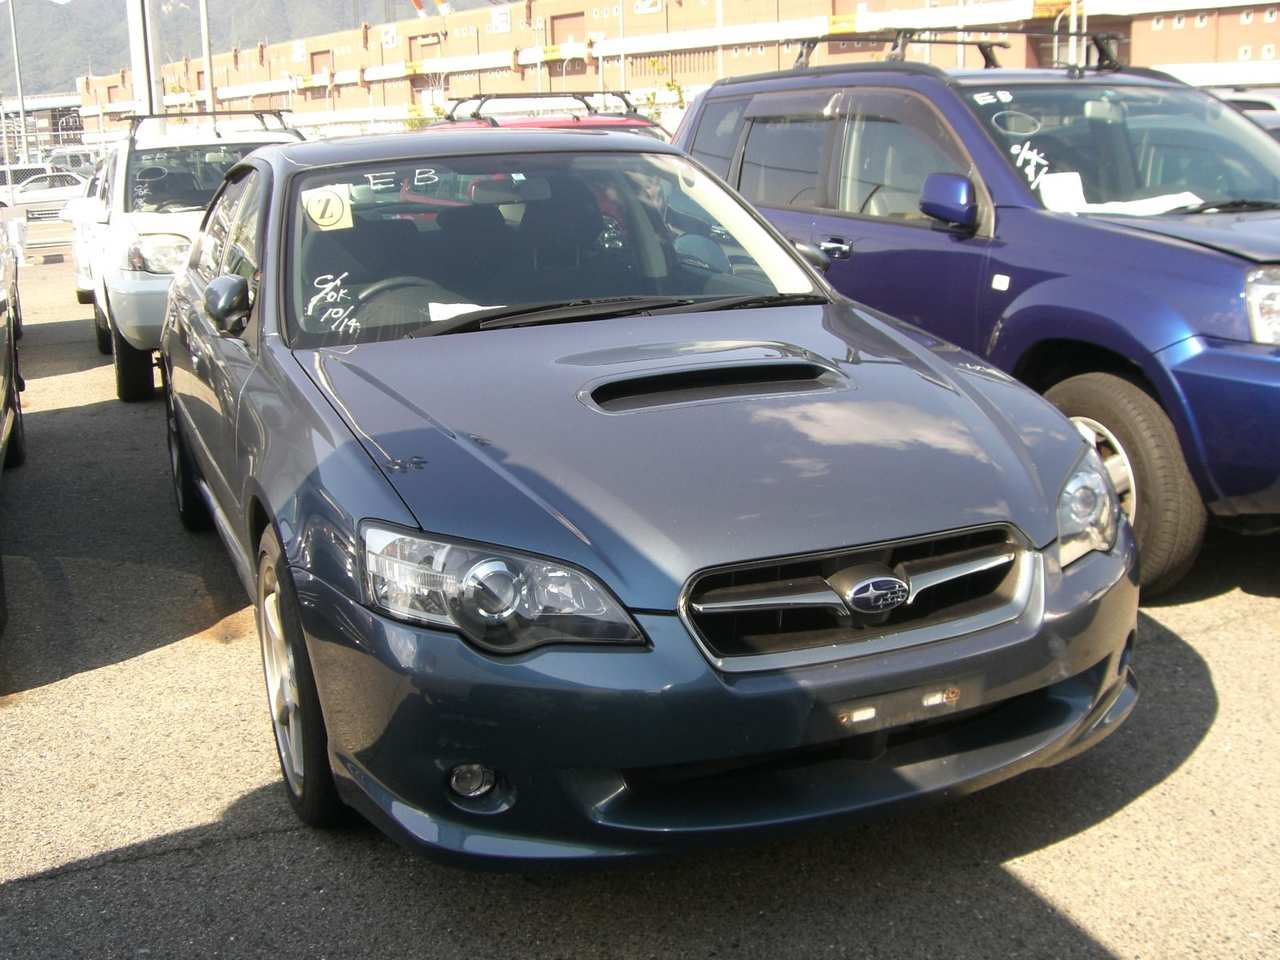 used 2004 subaru legacy b4 photos 2000cc gasoline automatic for sale. Black Bedroom Furniture Sets. Home Design Ideas